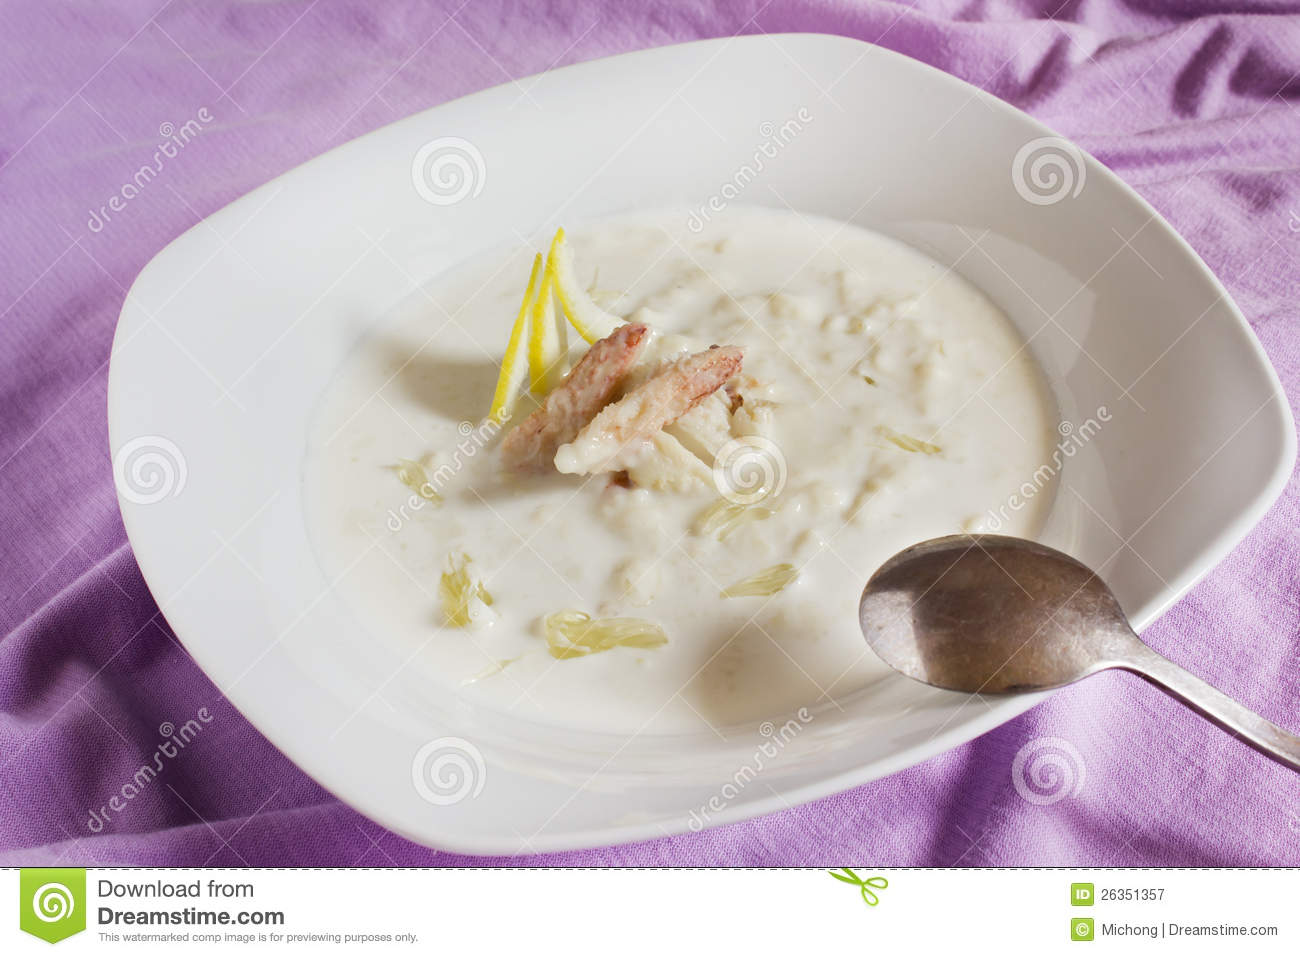 Crab Soup Royalty Free Stock Photography - Image: 26351357